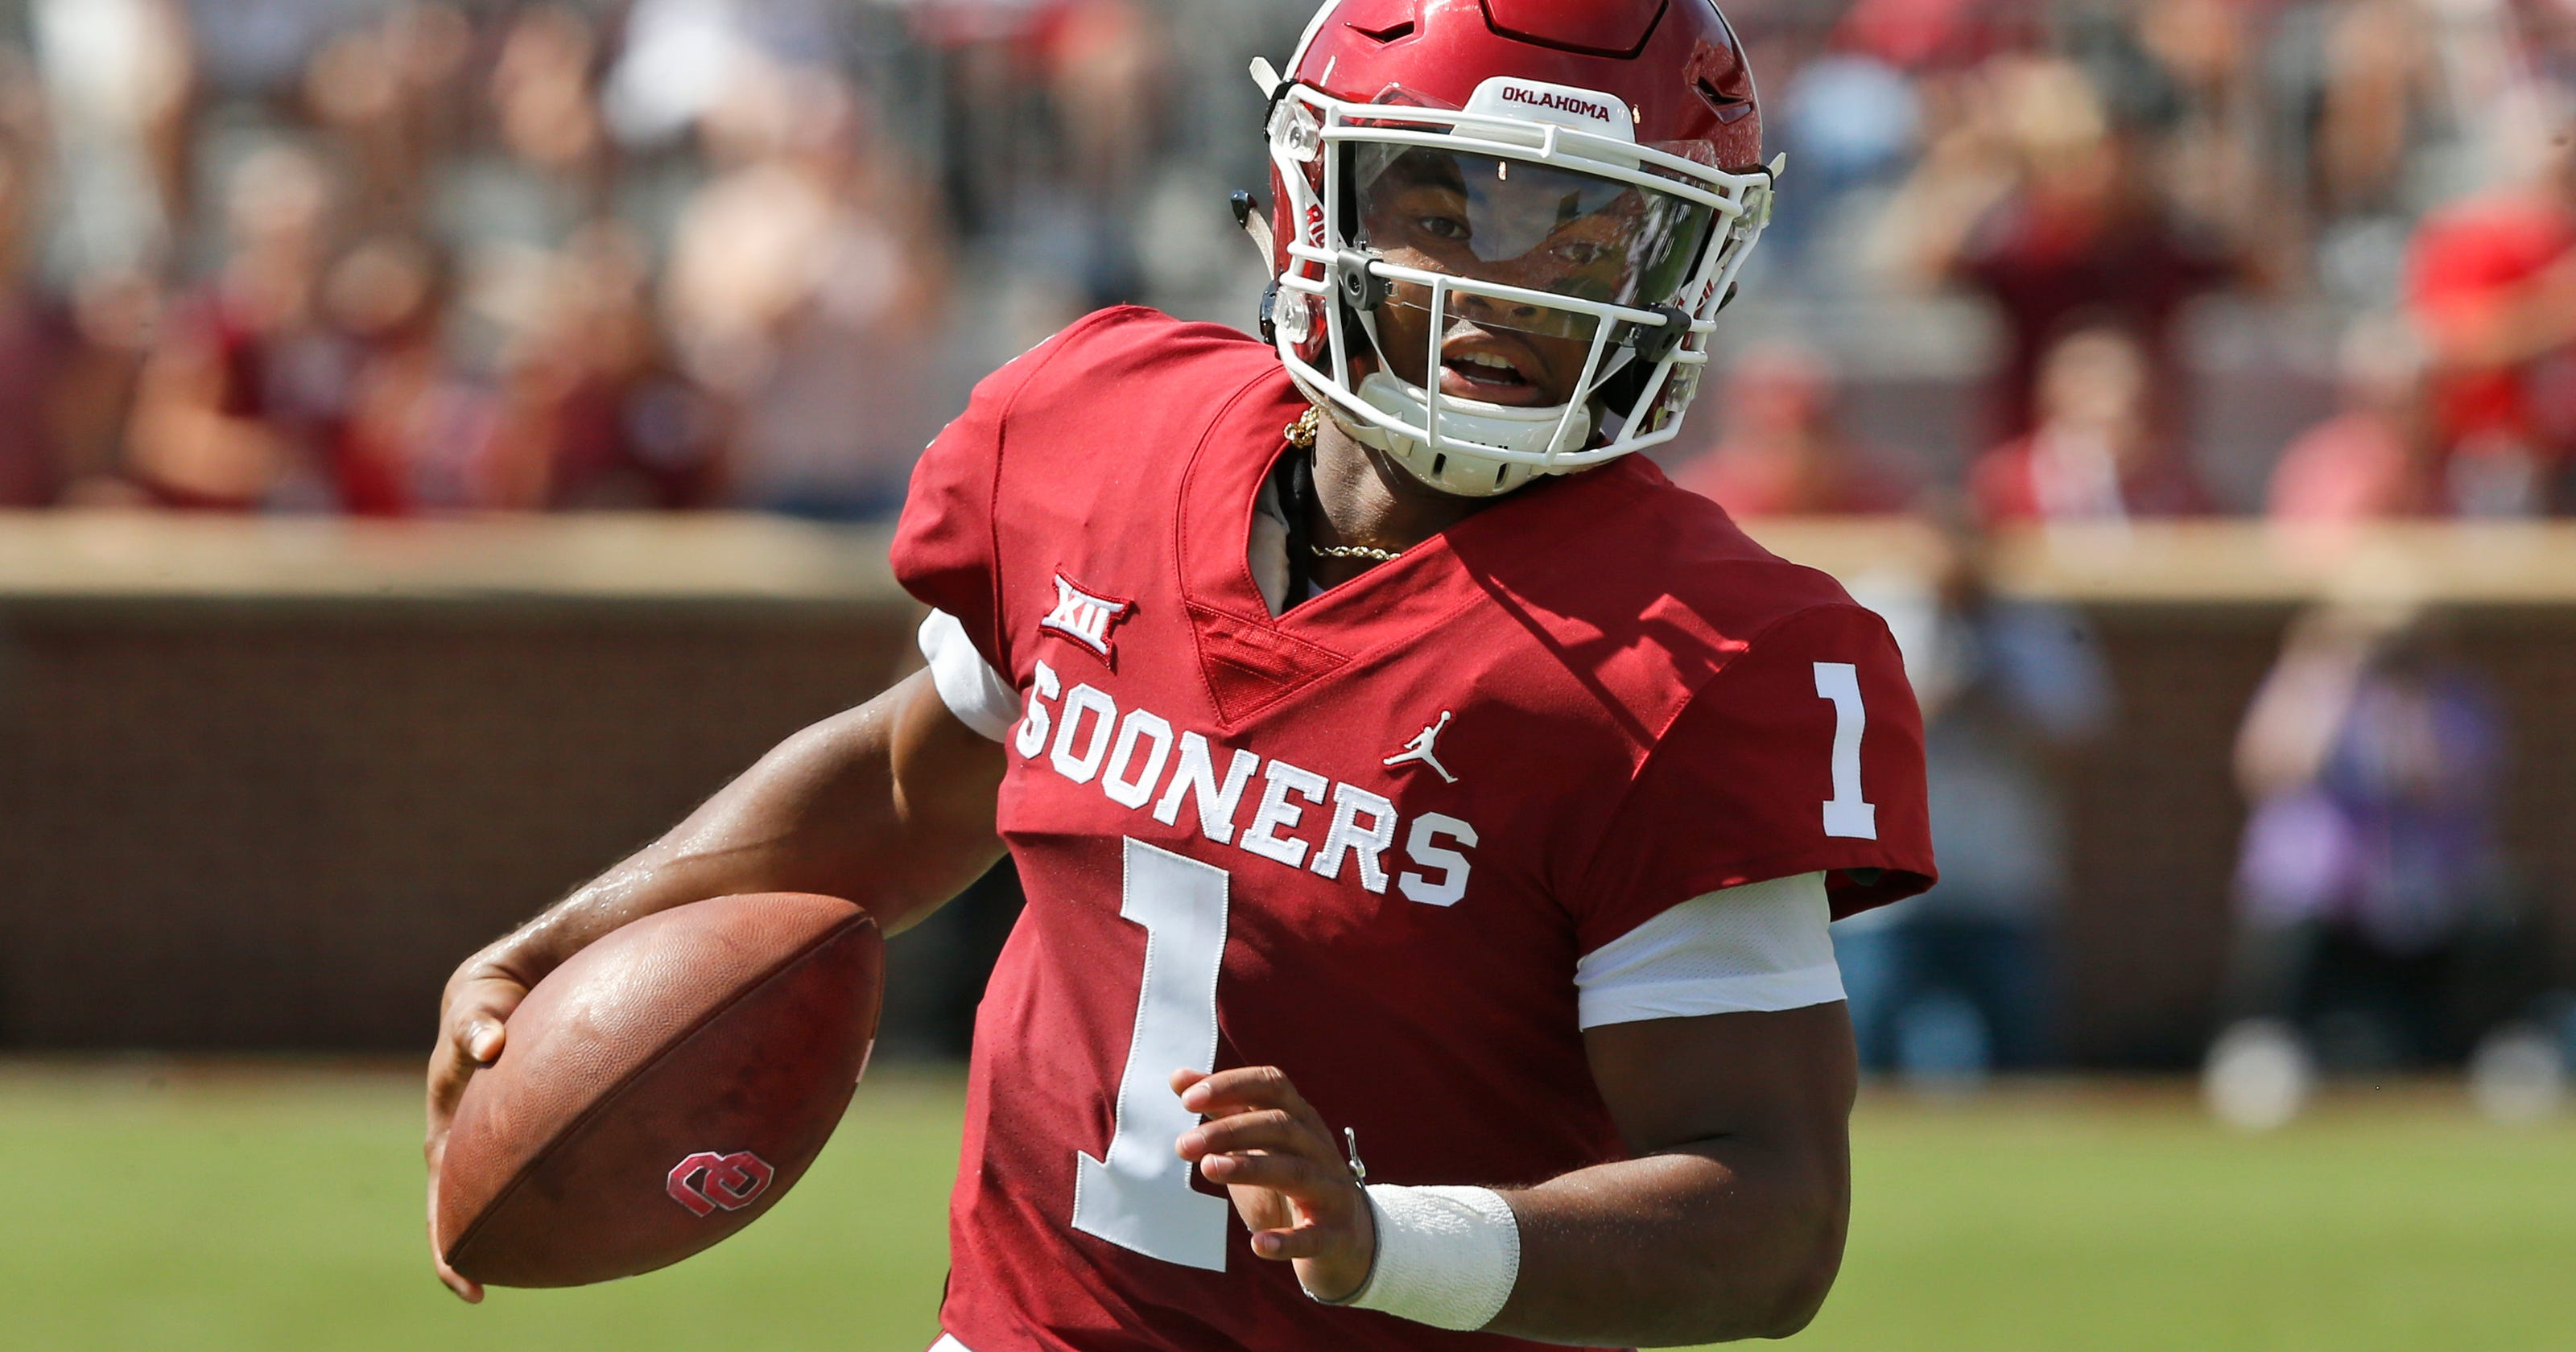 Heisman Trophy results: Oklahoma QB Kyler Murray wins over